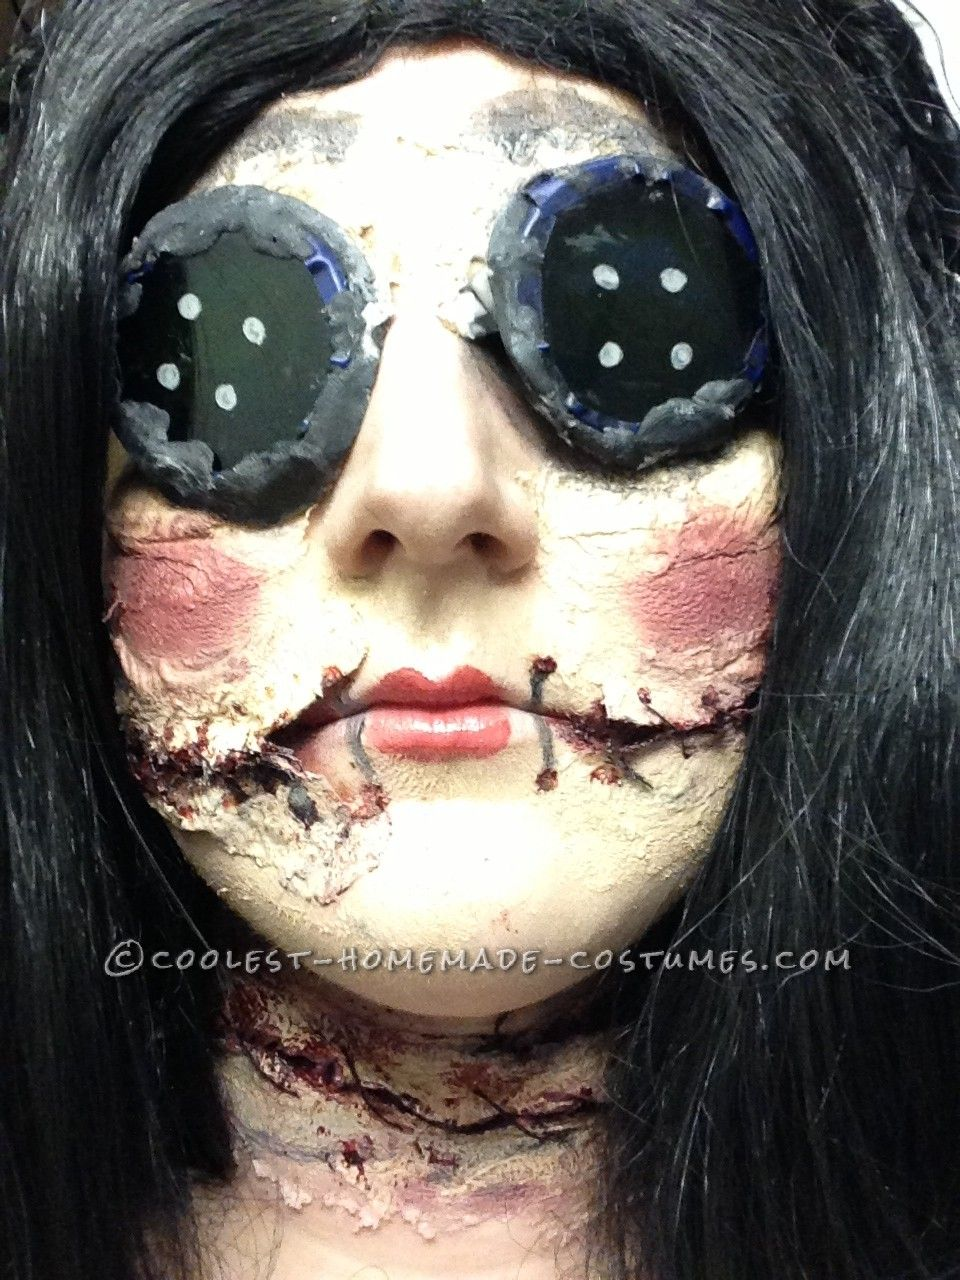 coraline-inspired creepy doll costume | coolest homemade costumes